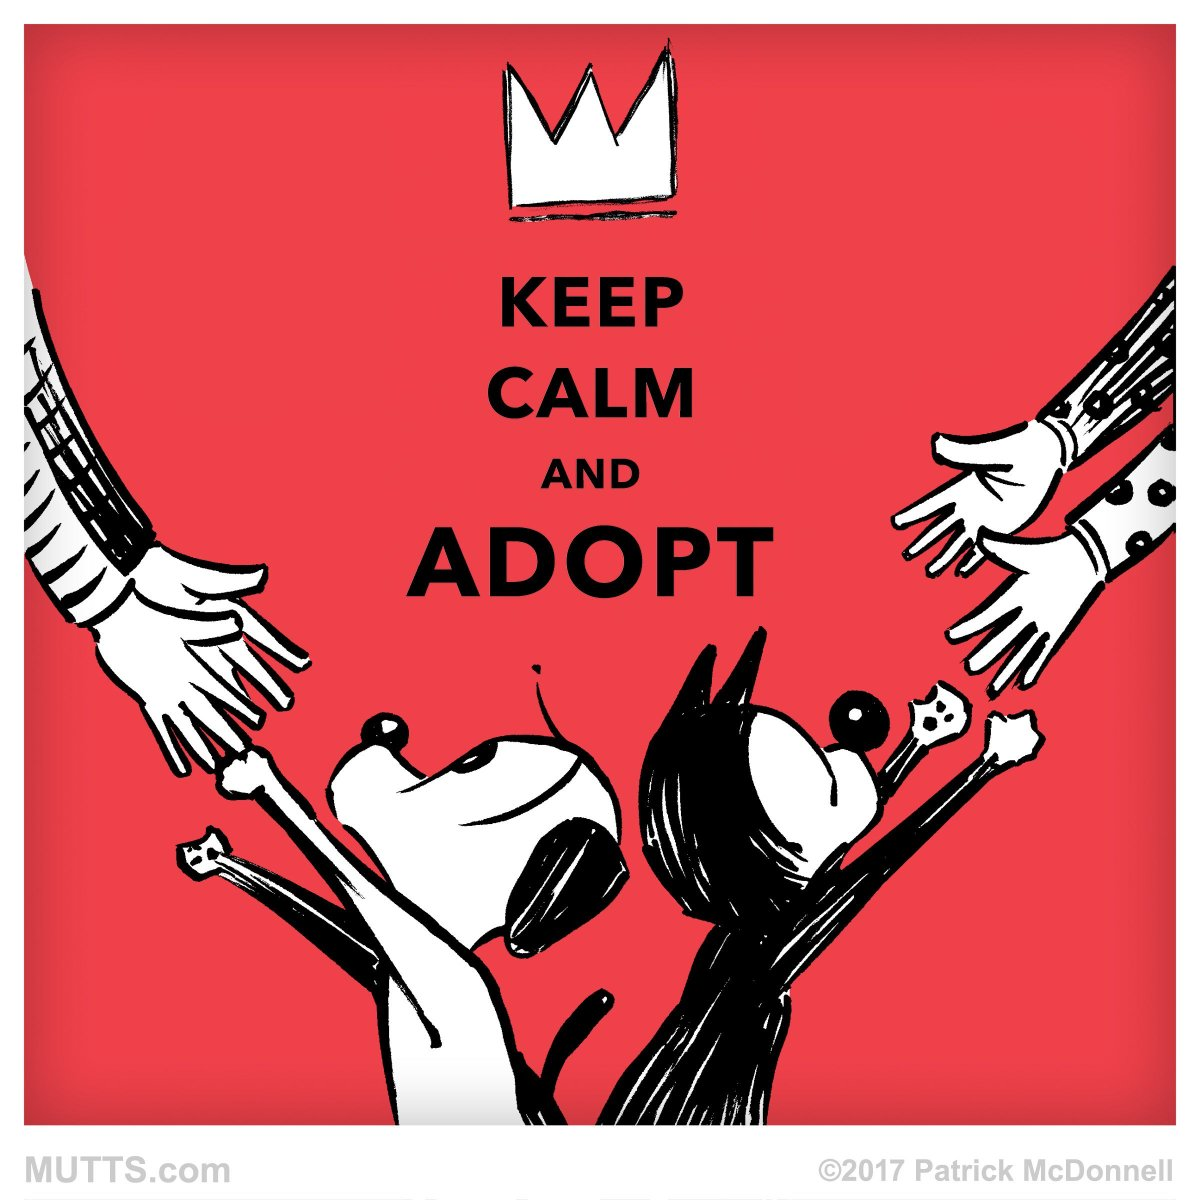 Share if you agree! #adoptdontshop <br>http://pic.twitter.com/pgEcIhw7TM